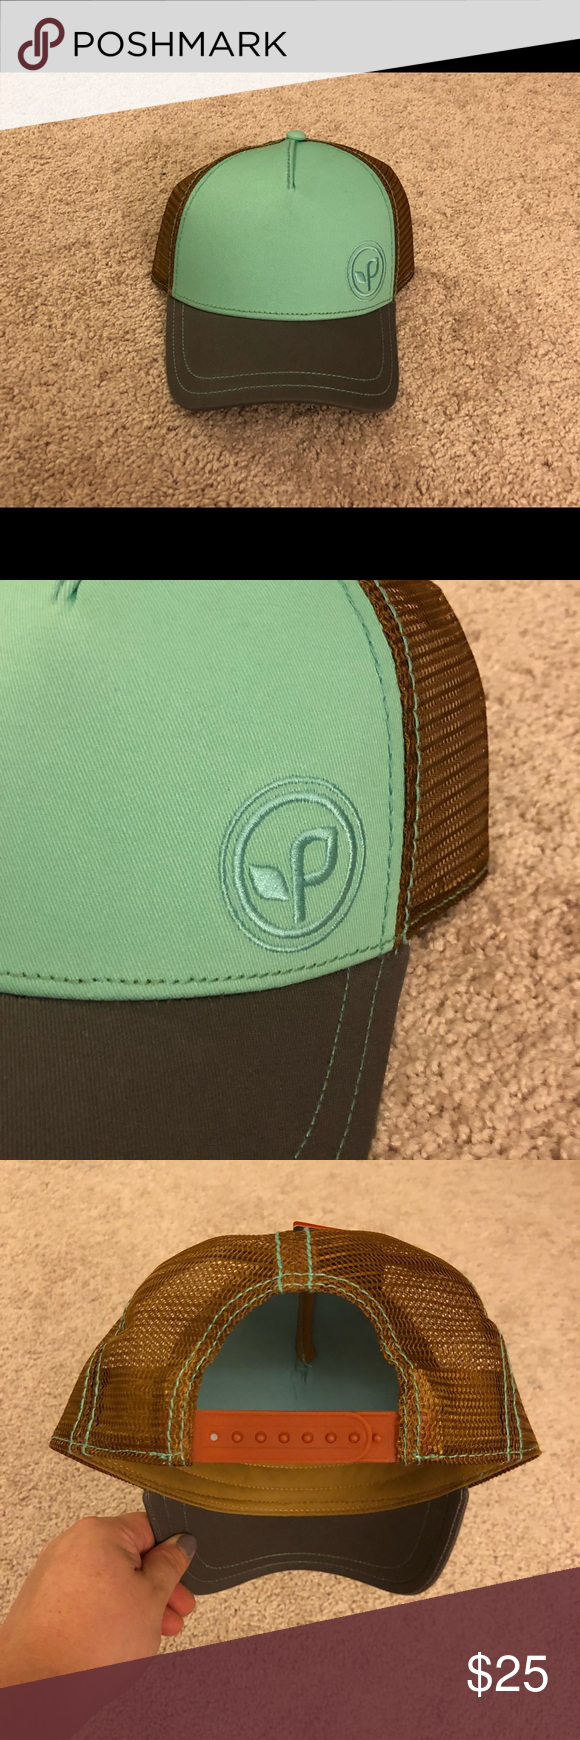 "d3e9f66125abc0 Women's Pistil Buttercup Trucker Hat Brand New!! Women's Pistil Buttercup  Trucker Hat. It is in the color ""mint"" which has a teal front, gray visor,  ..."